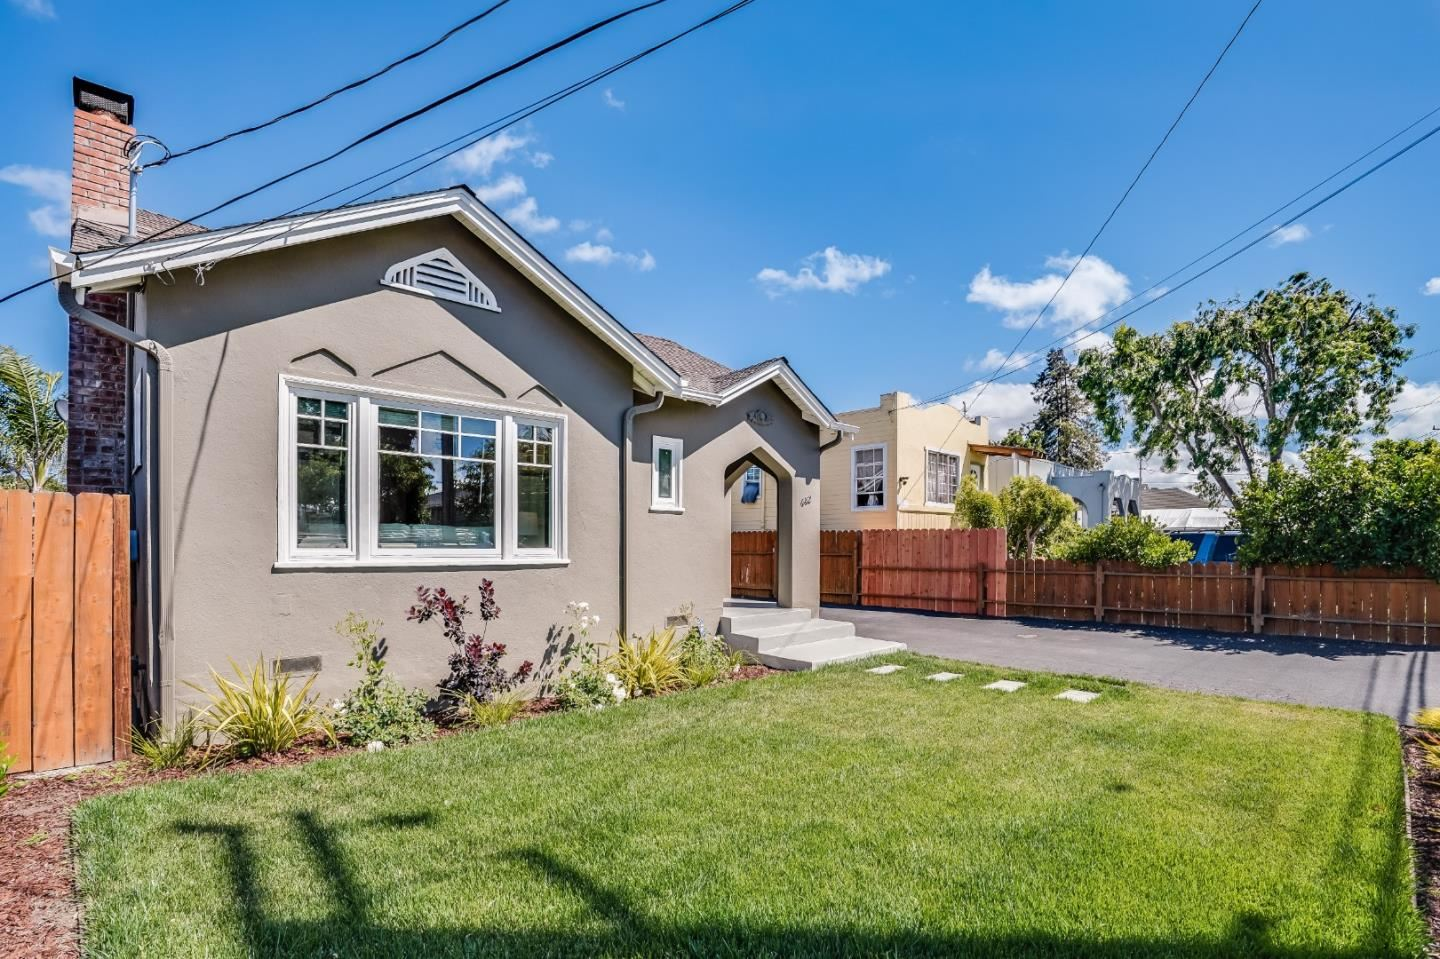 Photo for 682 2nd Avenue, REDWOOD CITY, CA 94063 (MLS # ML81848317)